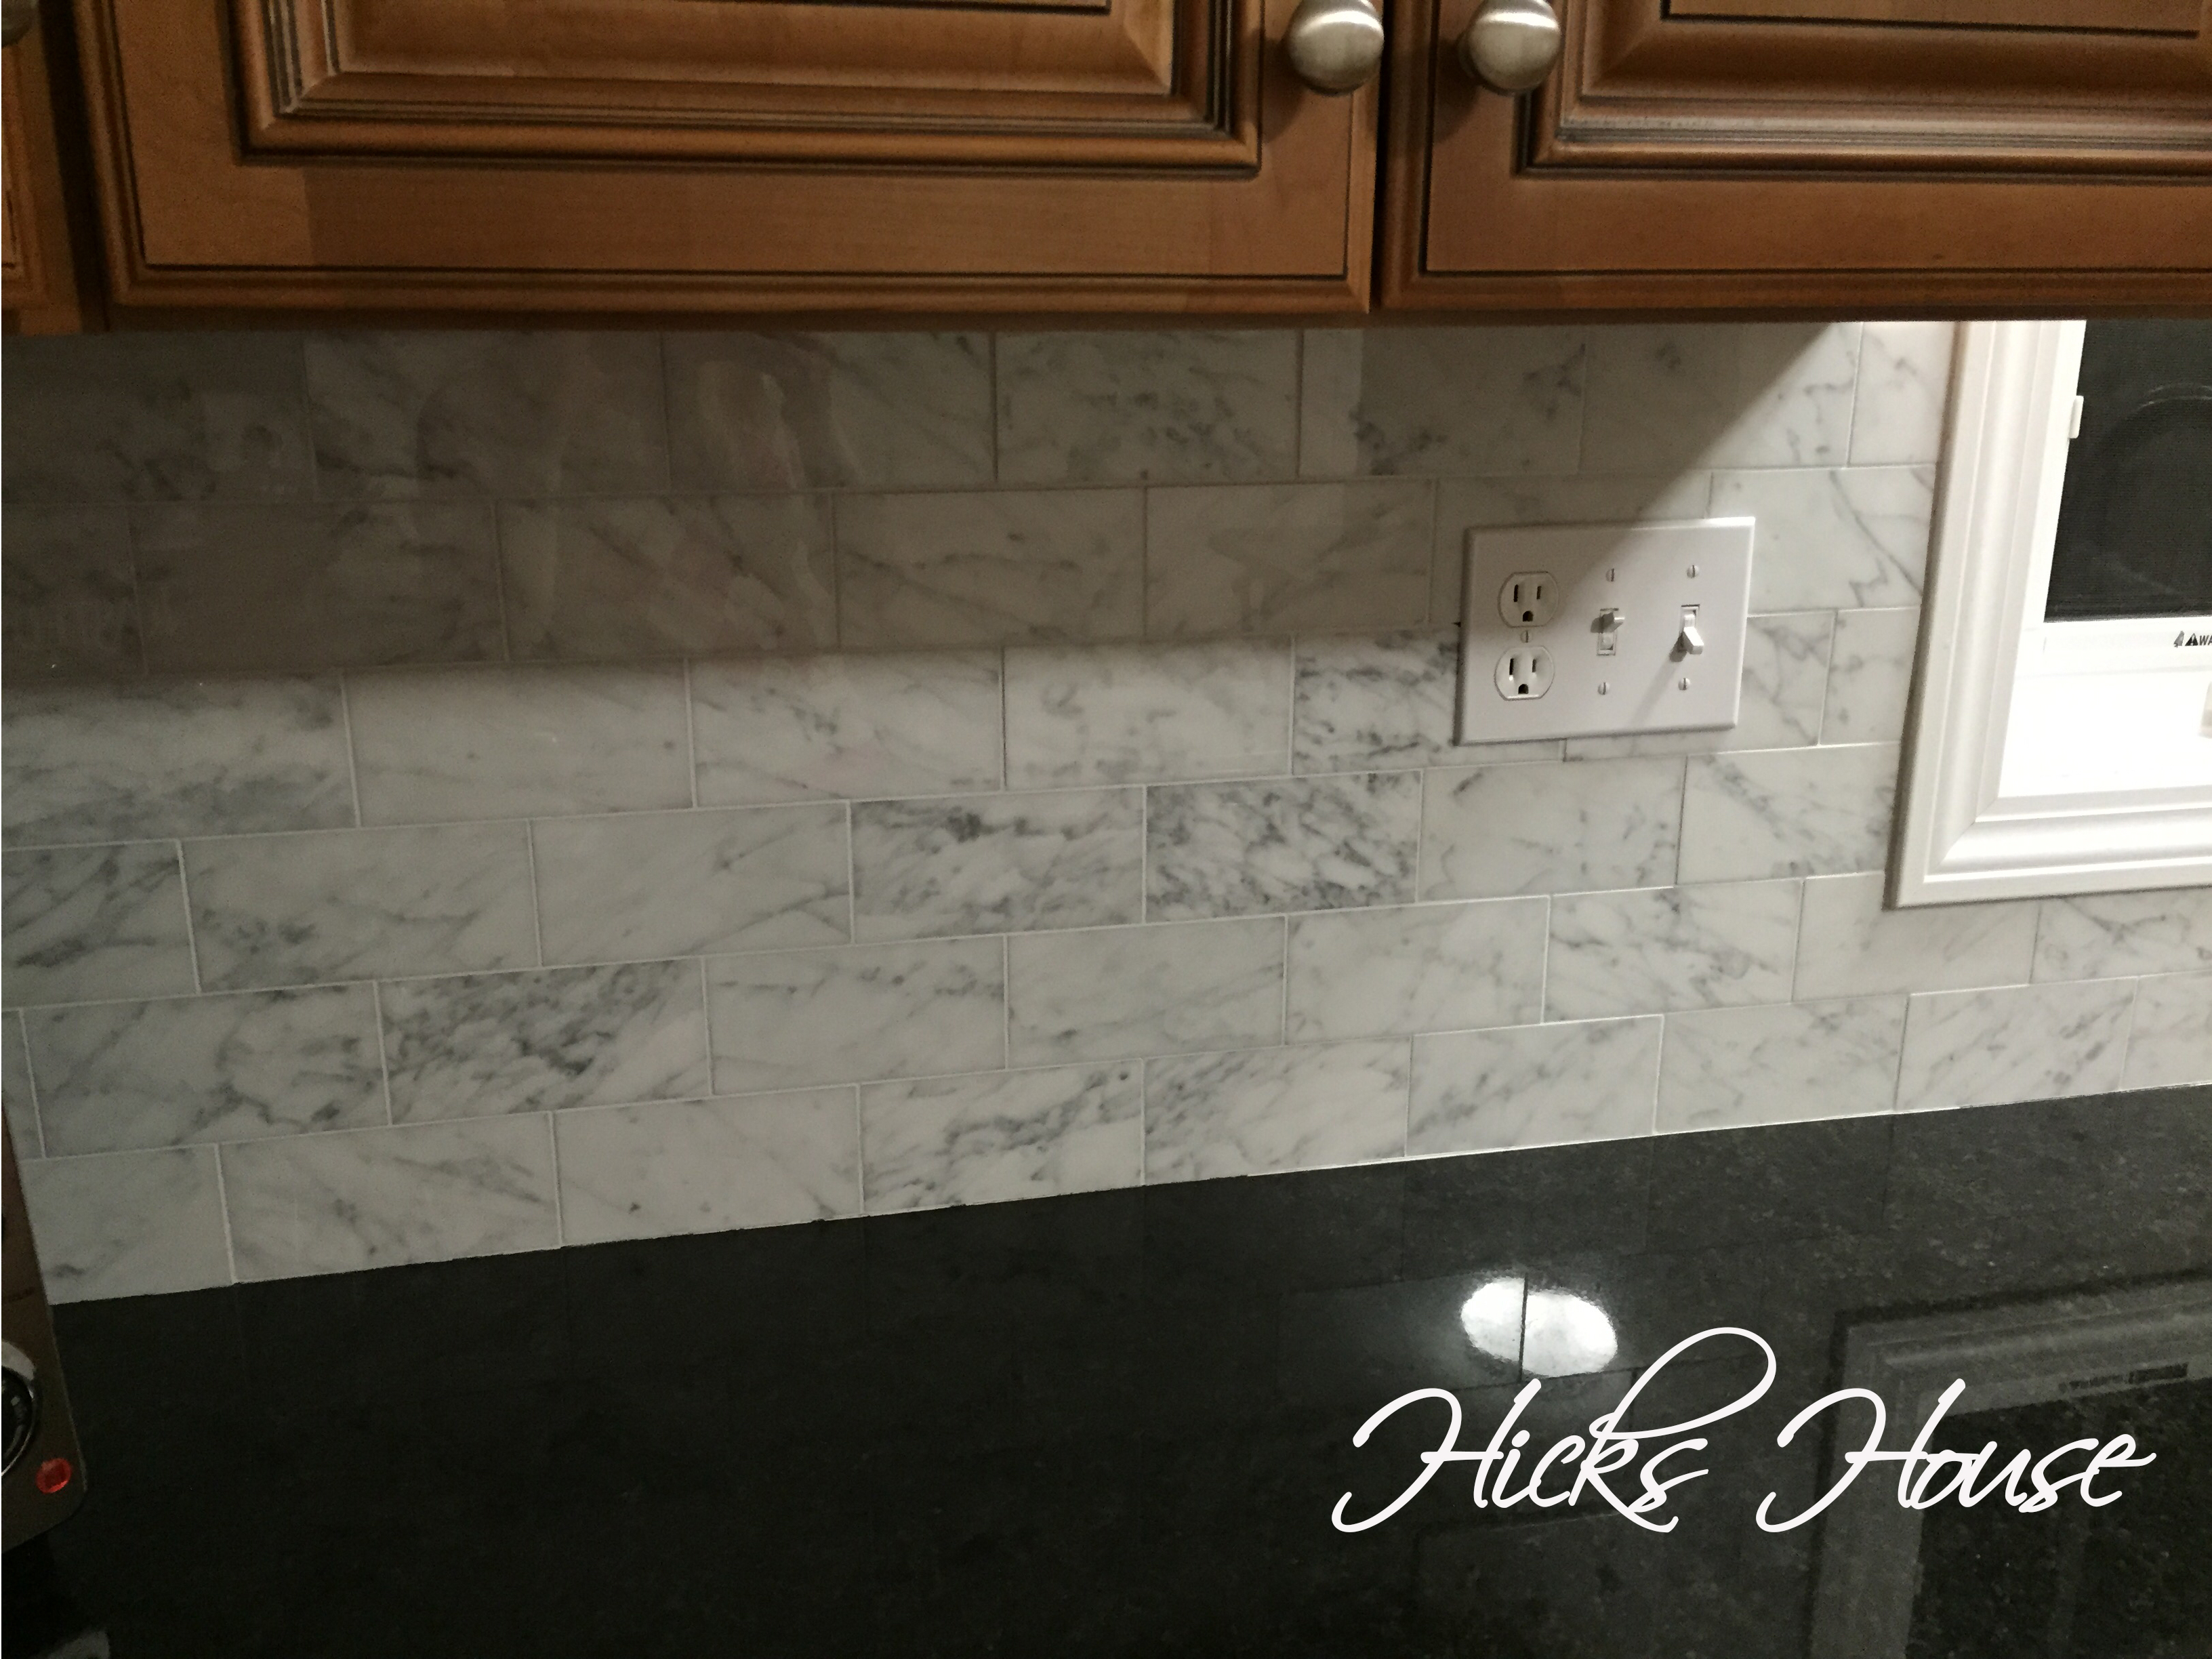 Carrara Marble Backsplash Hicks House